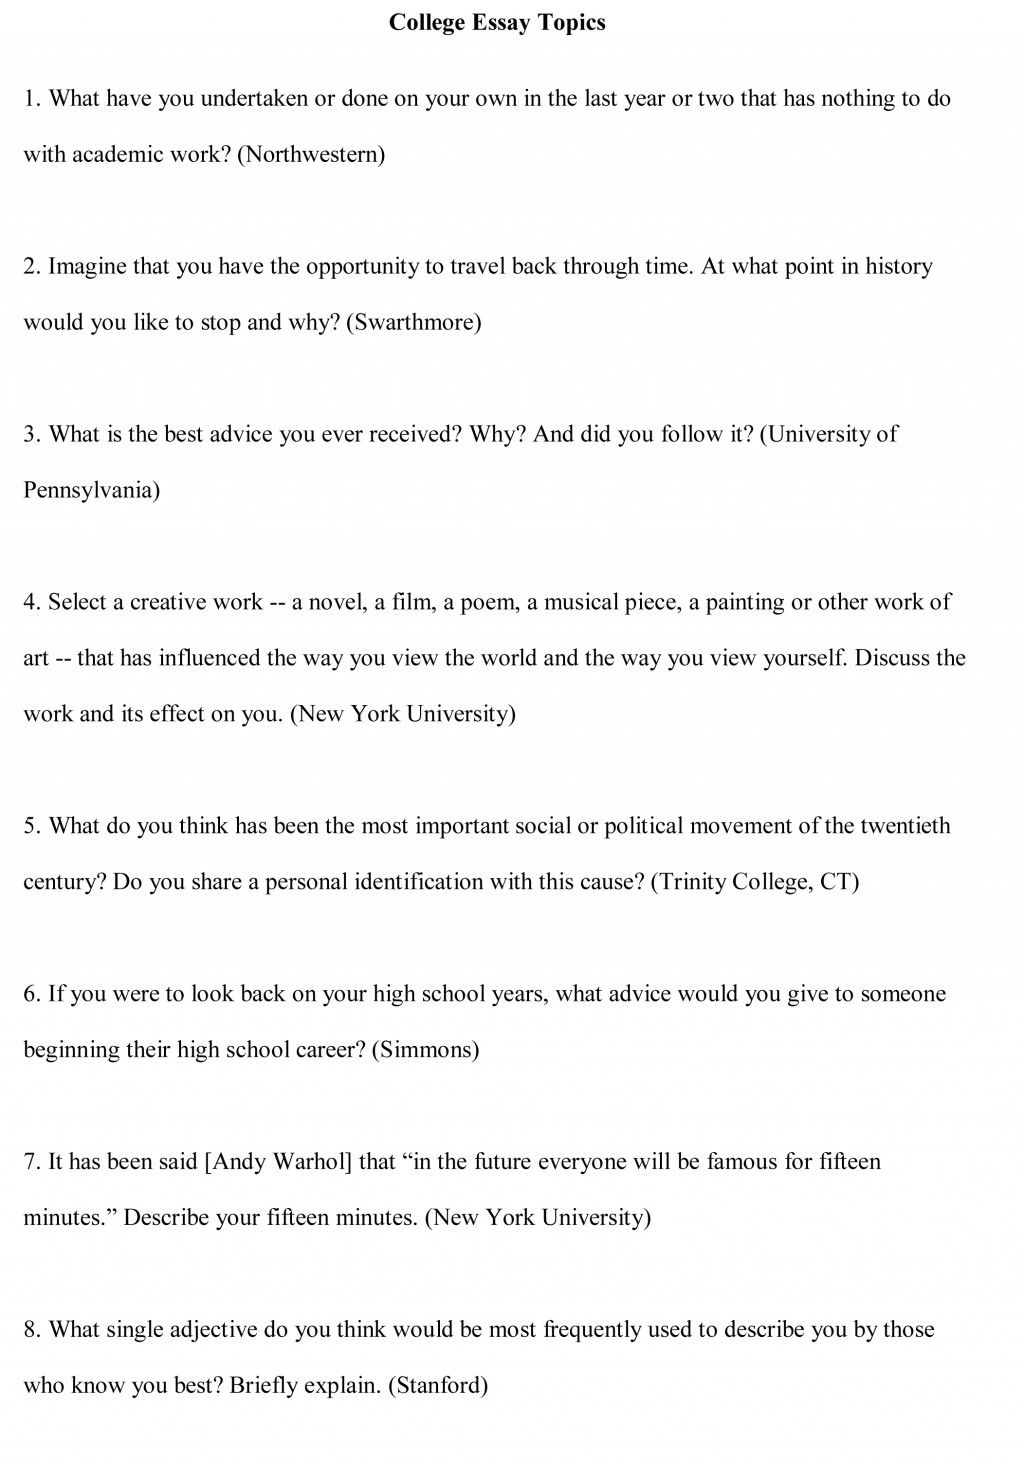 024 College Essay Topics Free Sample1 Example Dreaded Informative Prompts High School 2018 Middle Large